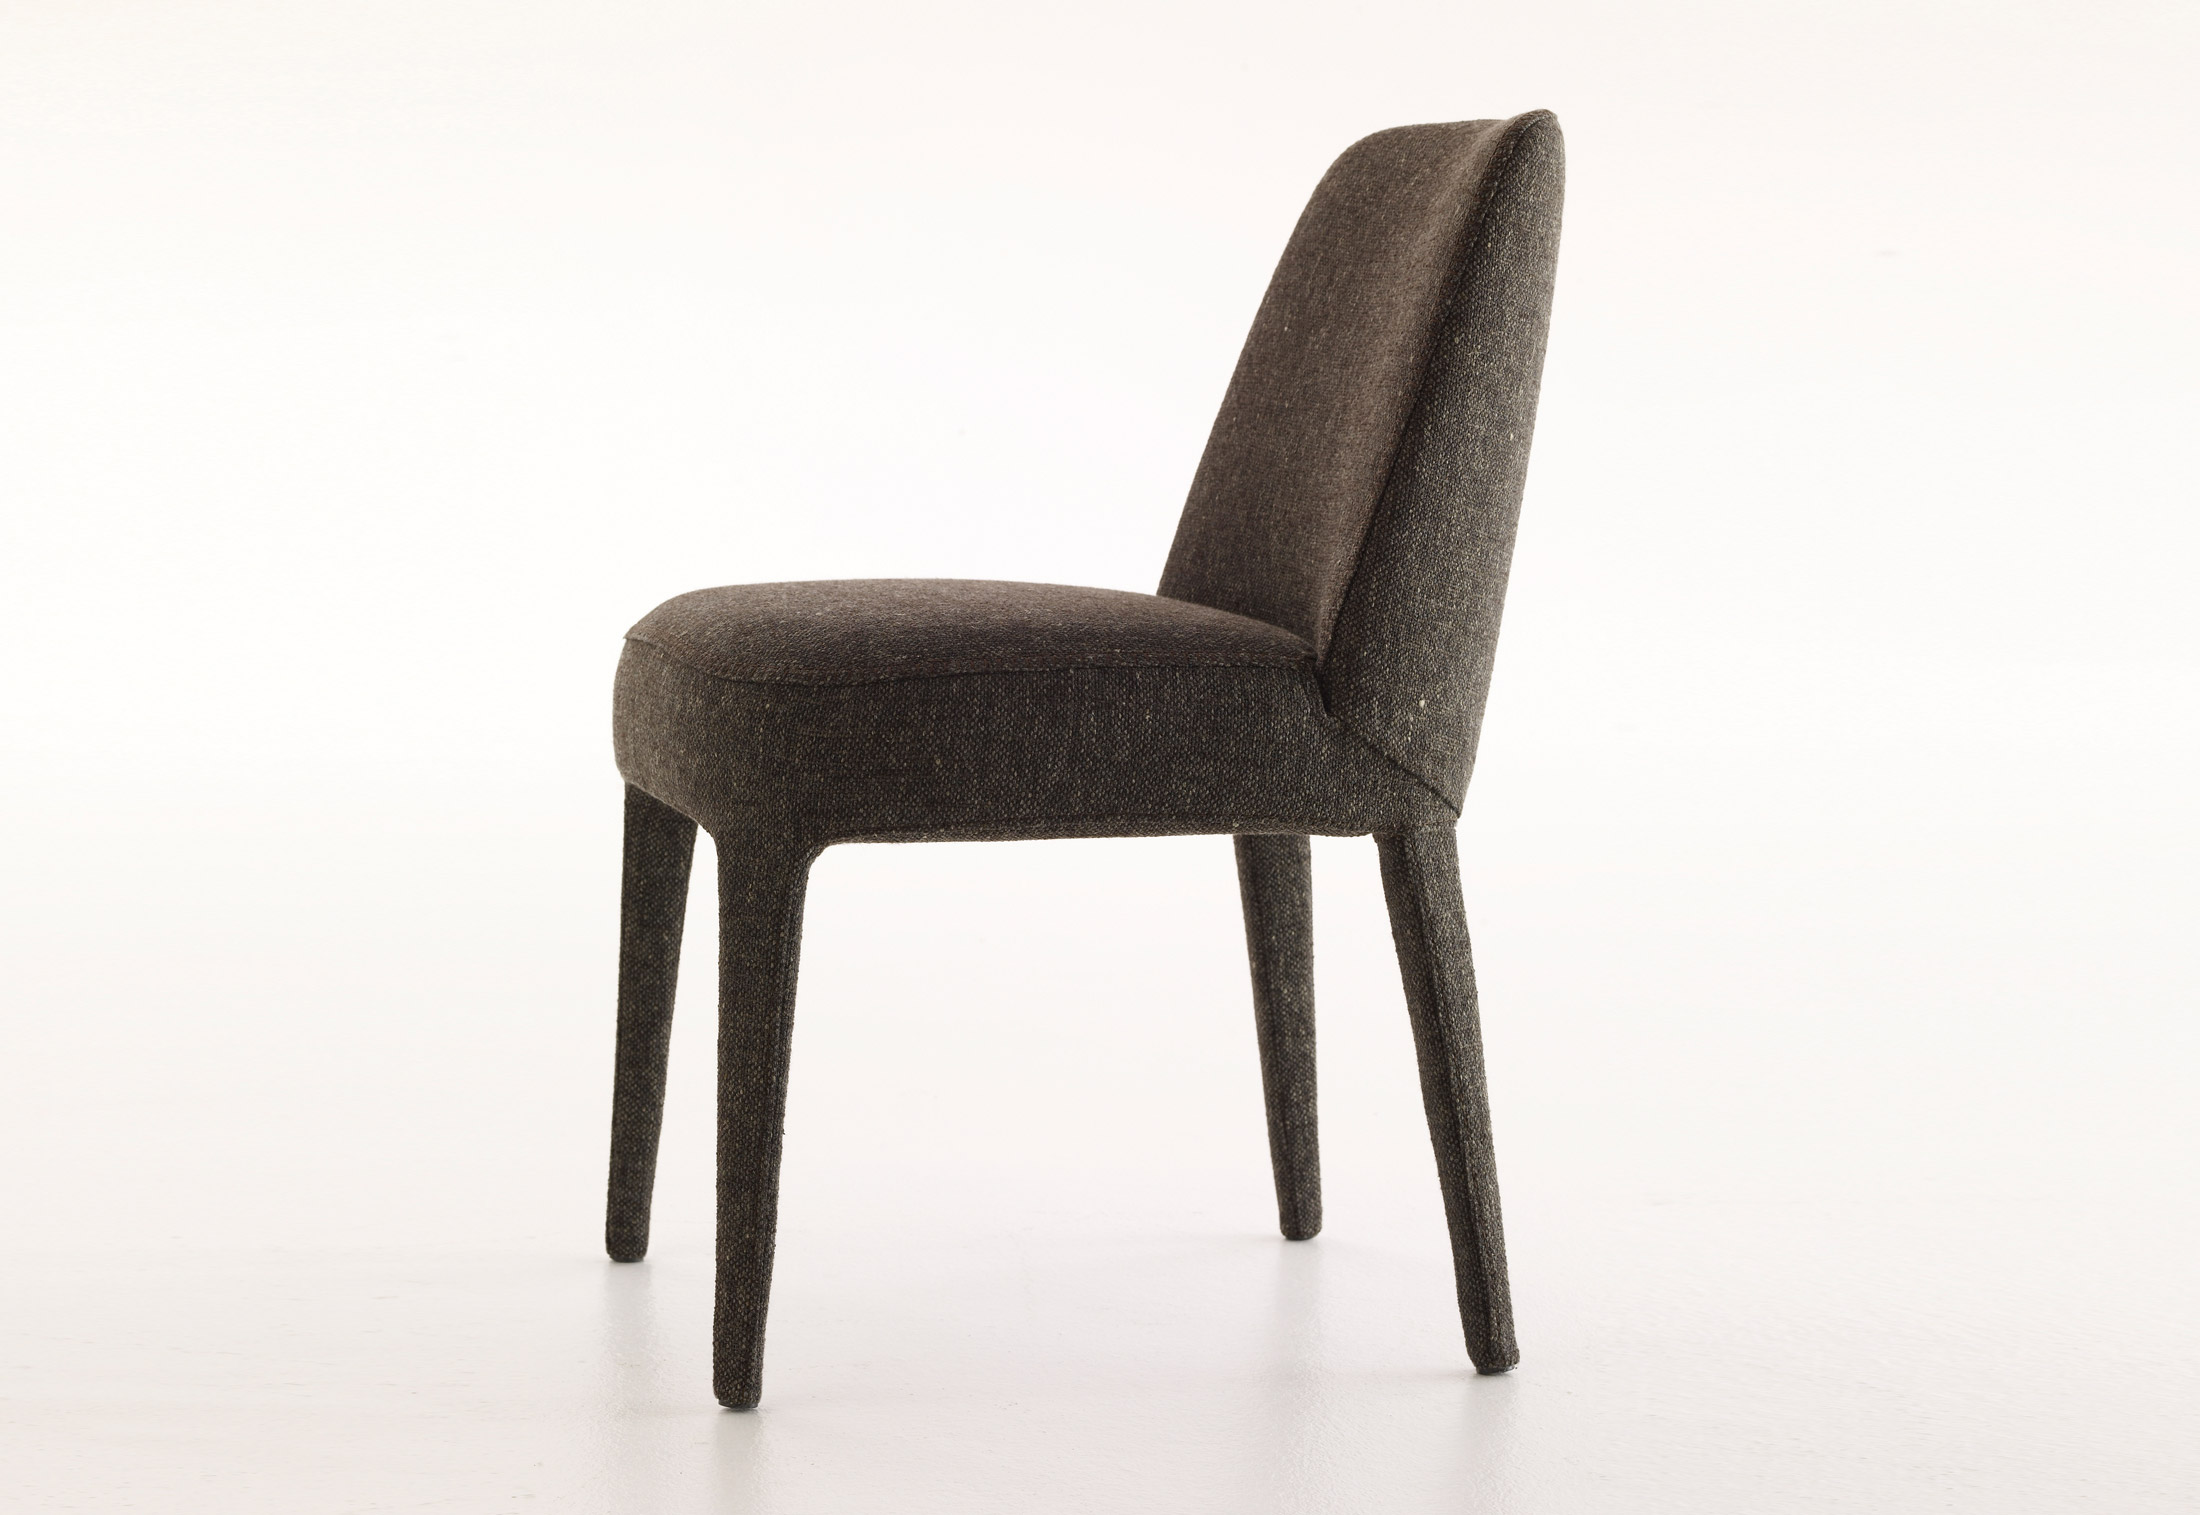 FEBO Chair 2804 By Maxalto